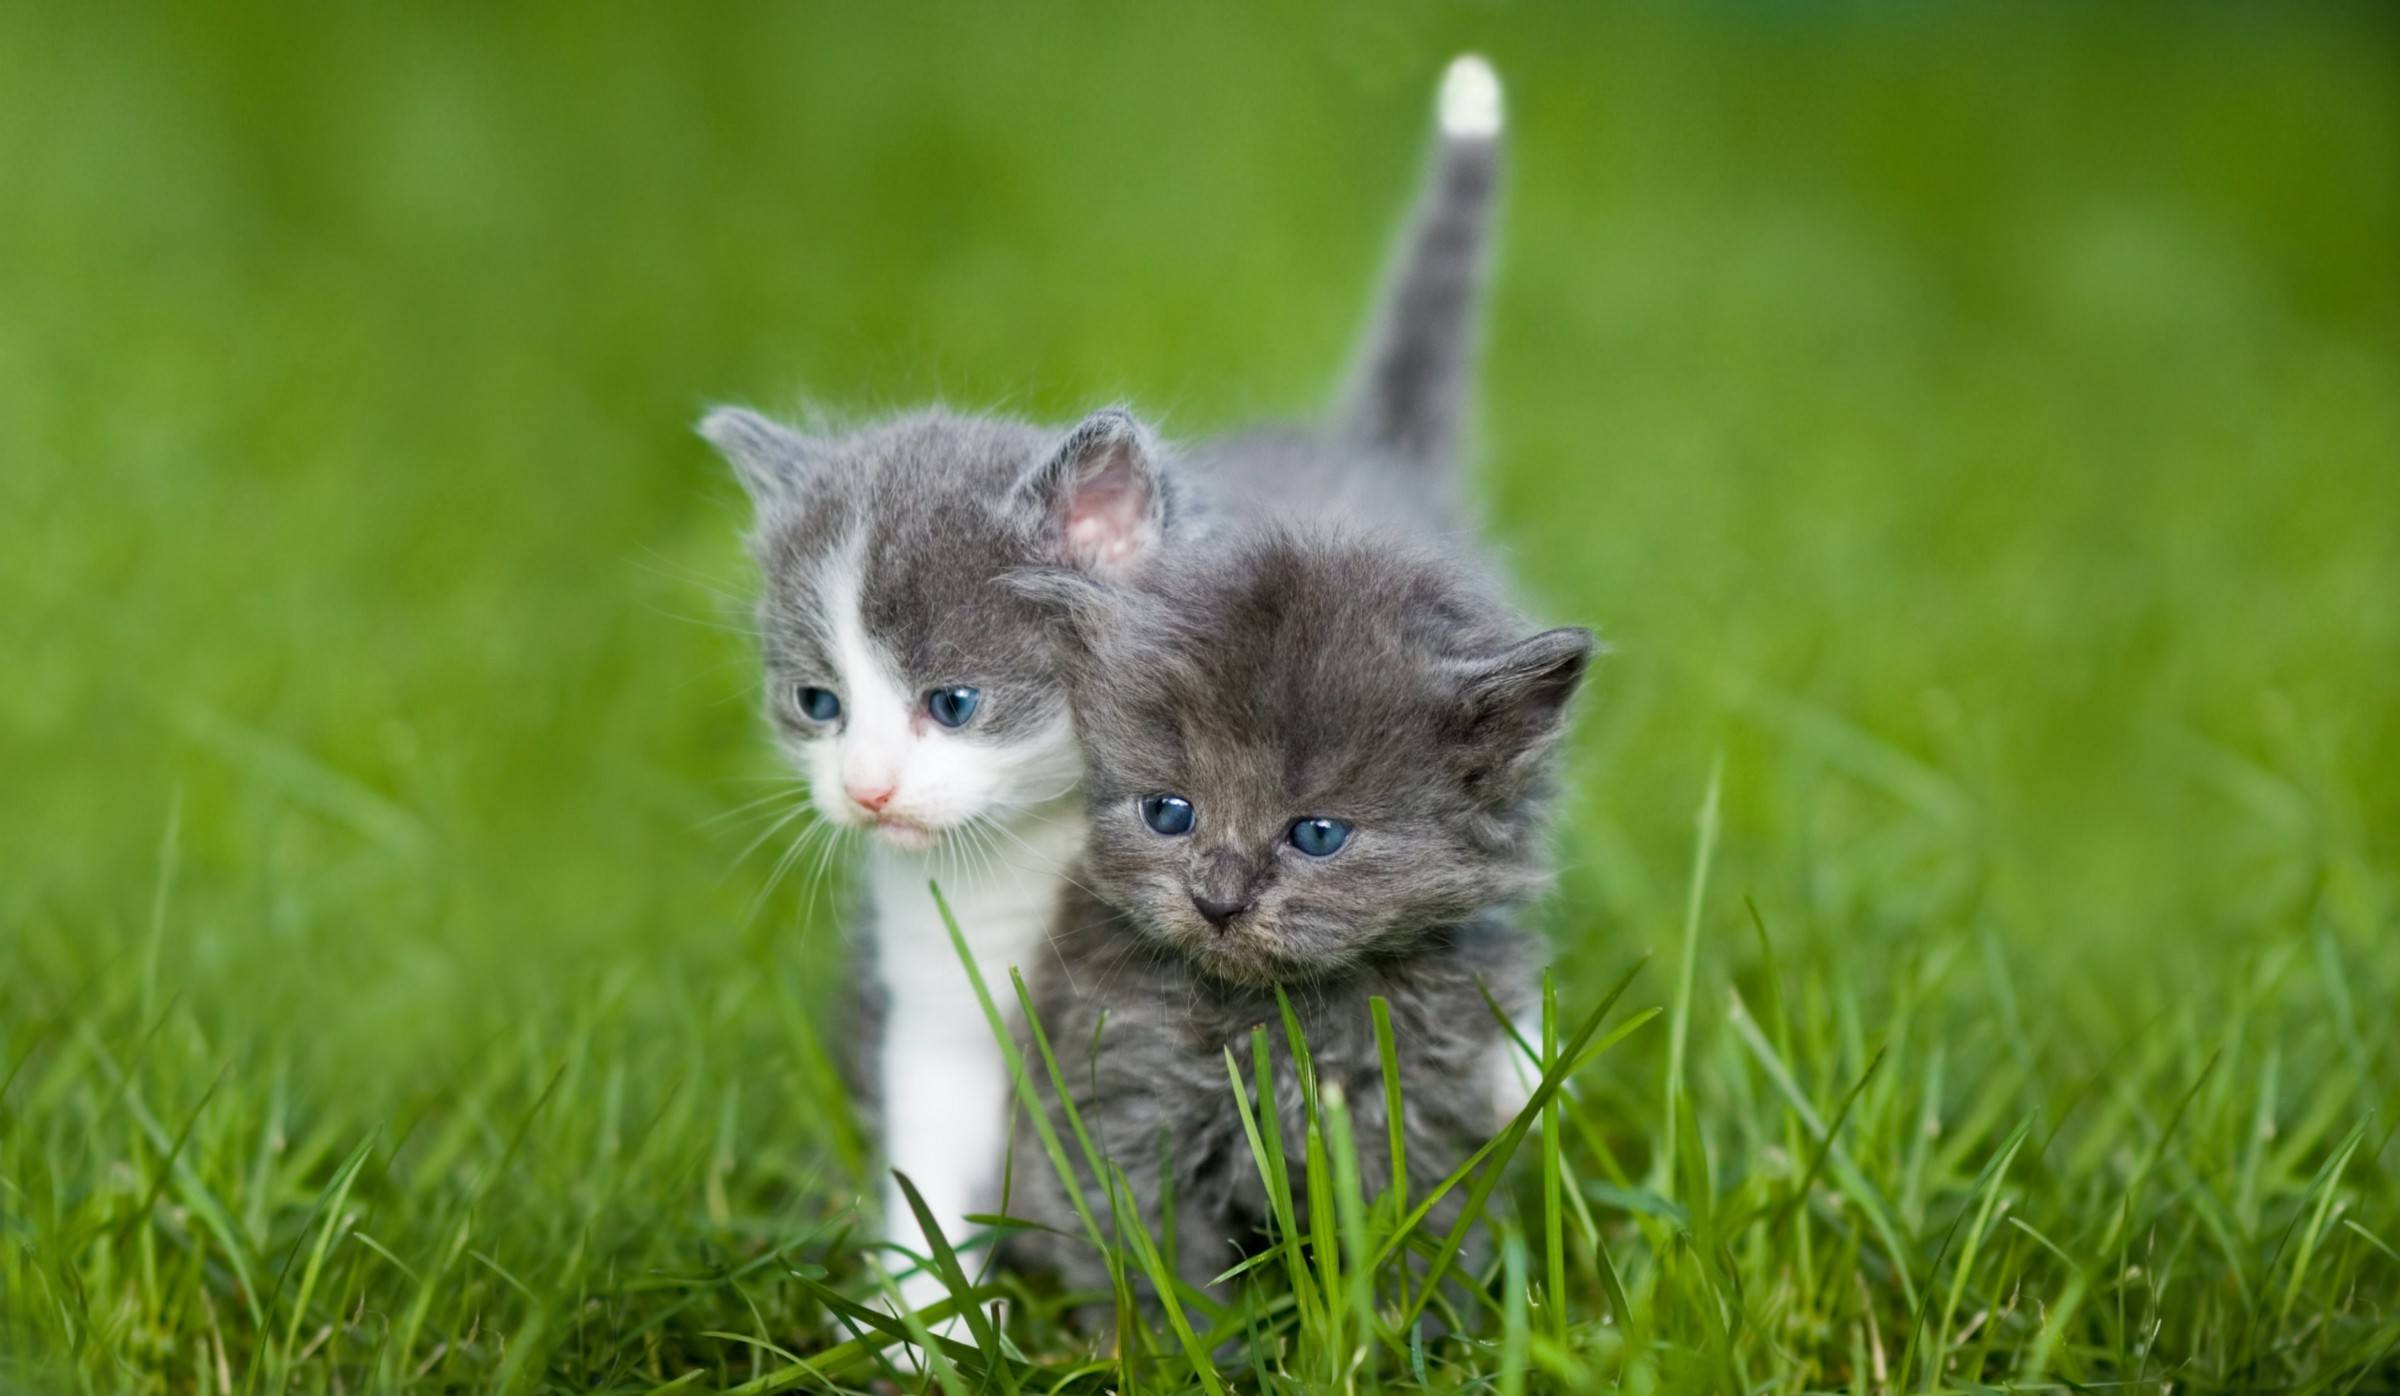 A white-and-gray kitten and a gray kitten stand very close, so it looks like they might be splitting apart.